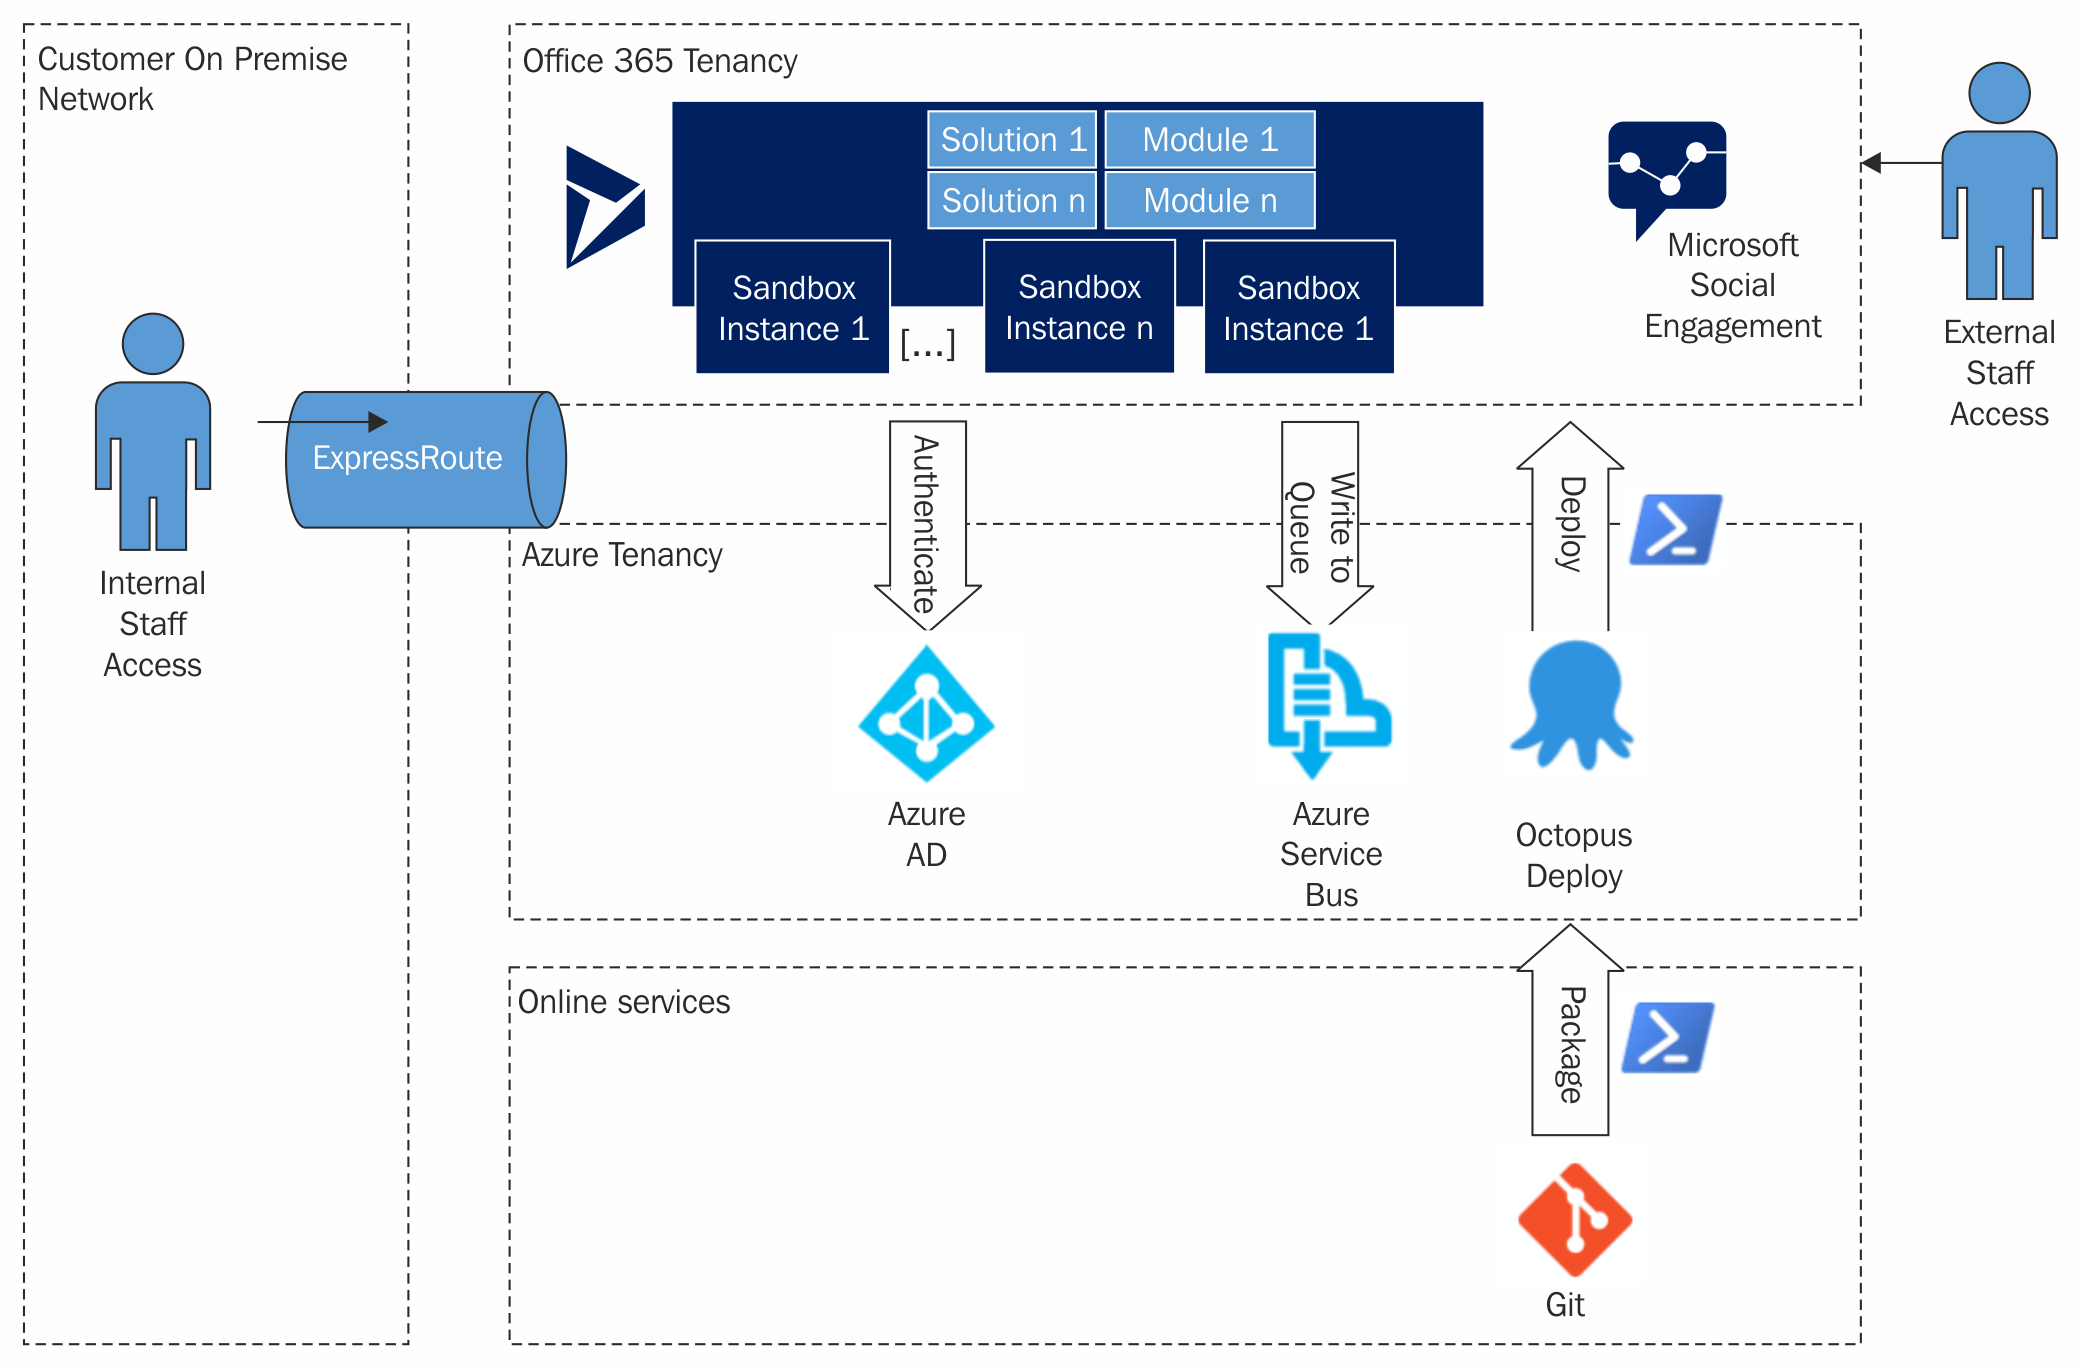 Logical view microsoft dynamics 365 extensions cookbook book the following diagram depicts a logical view of a sample dynamics 365 solution with some enabled add ons and integration points pooptronica